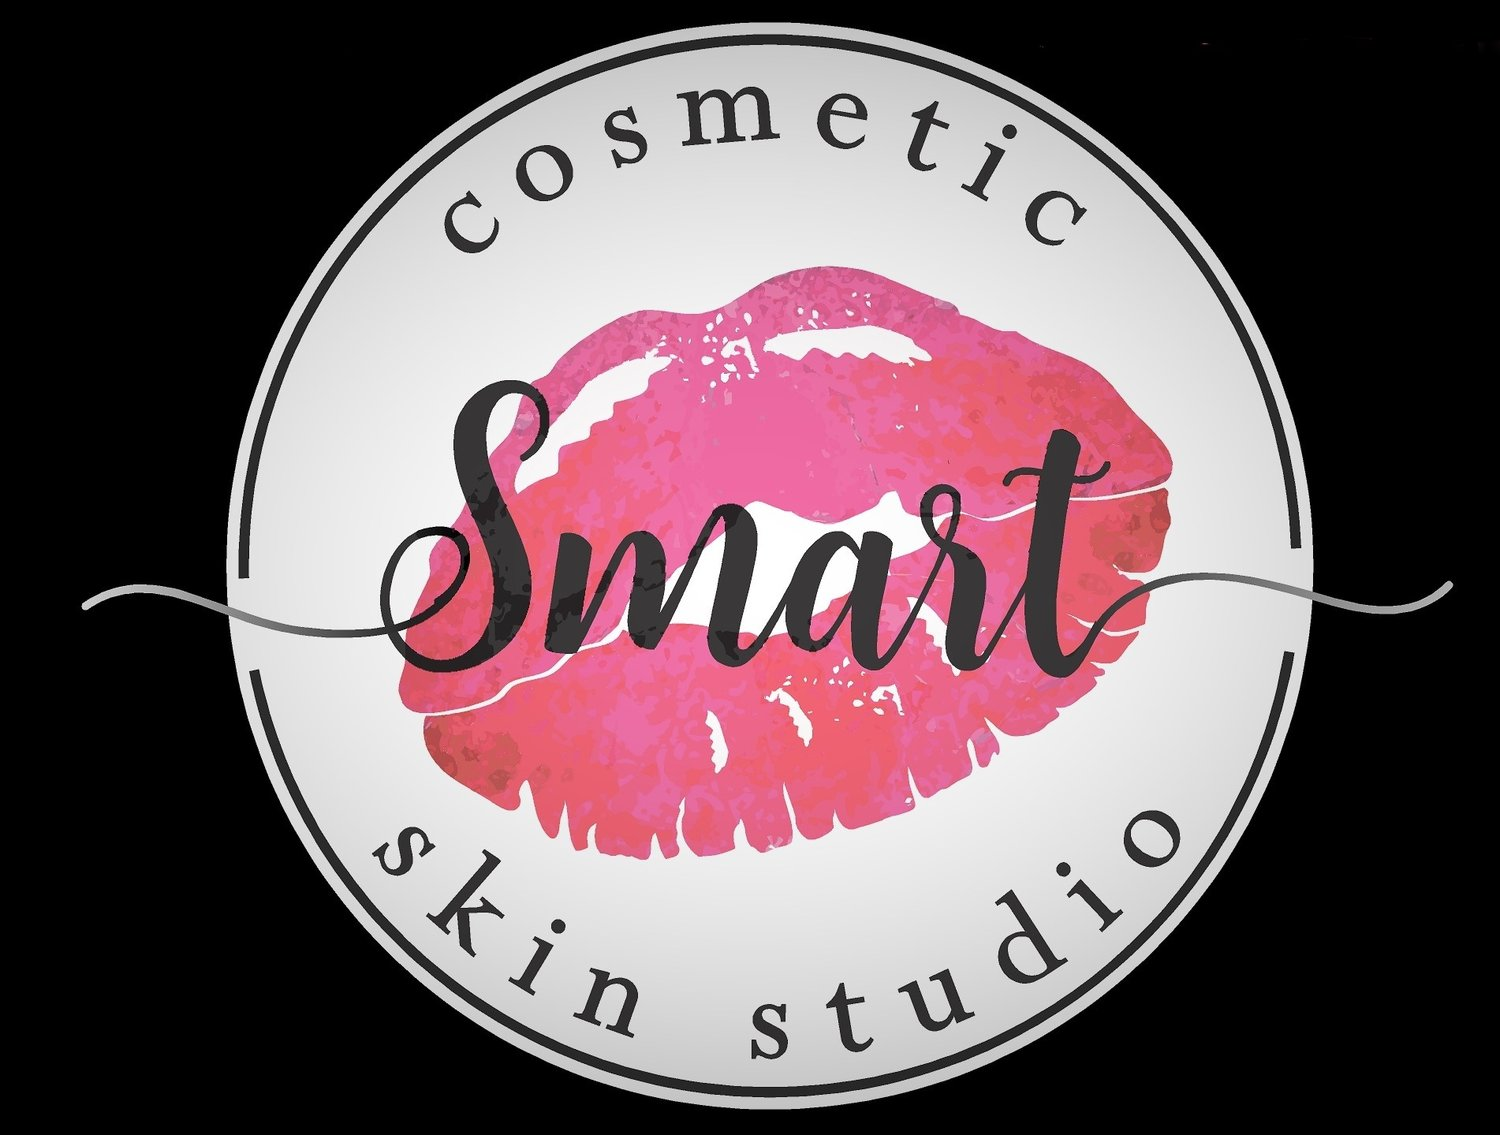 Smart Cosmetic Studio and Skin